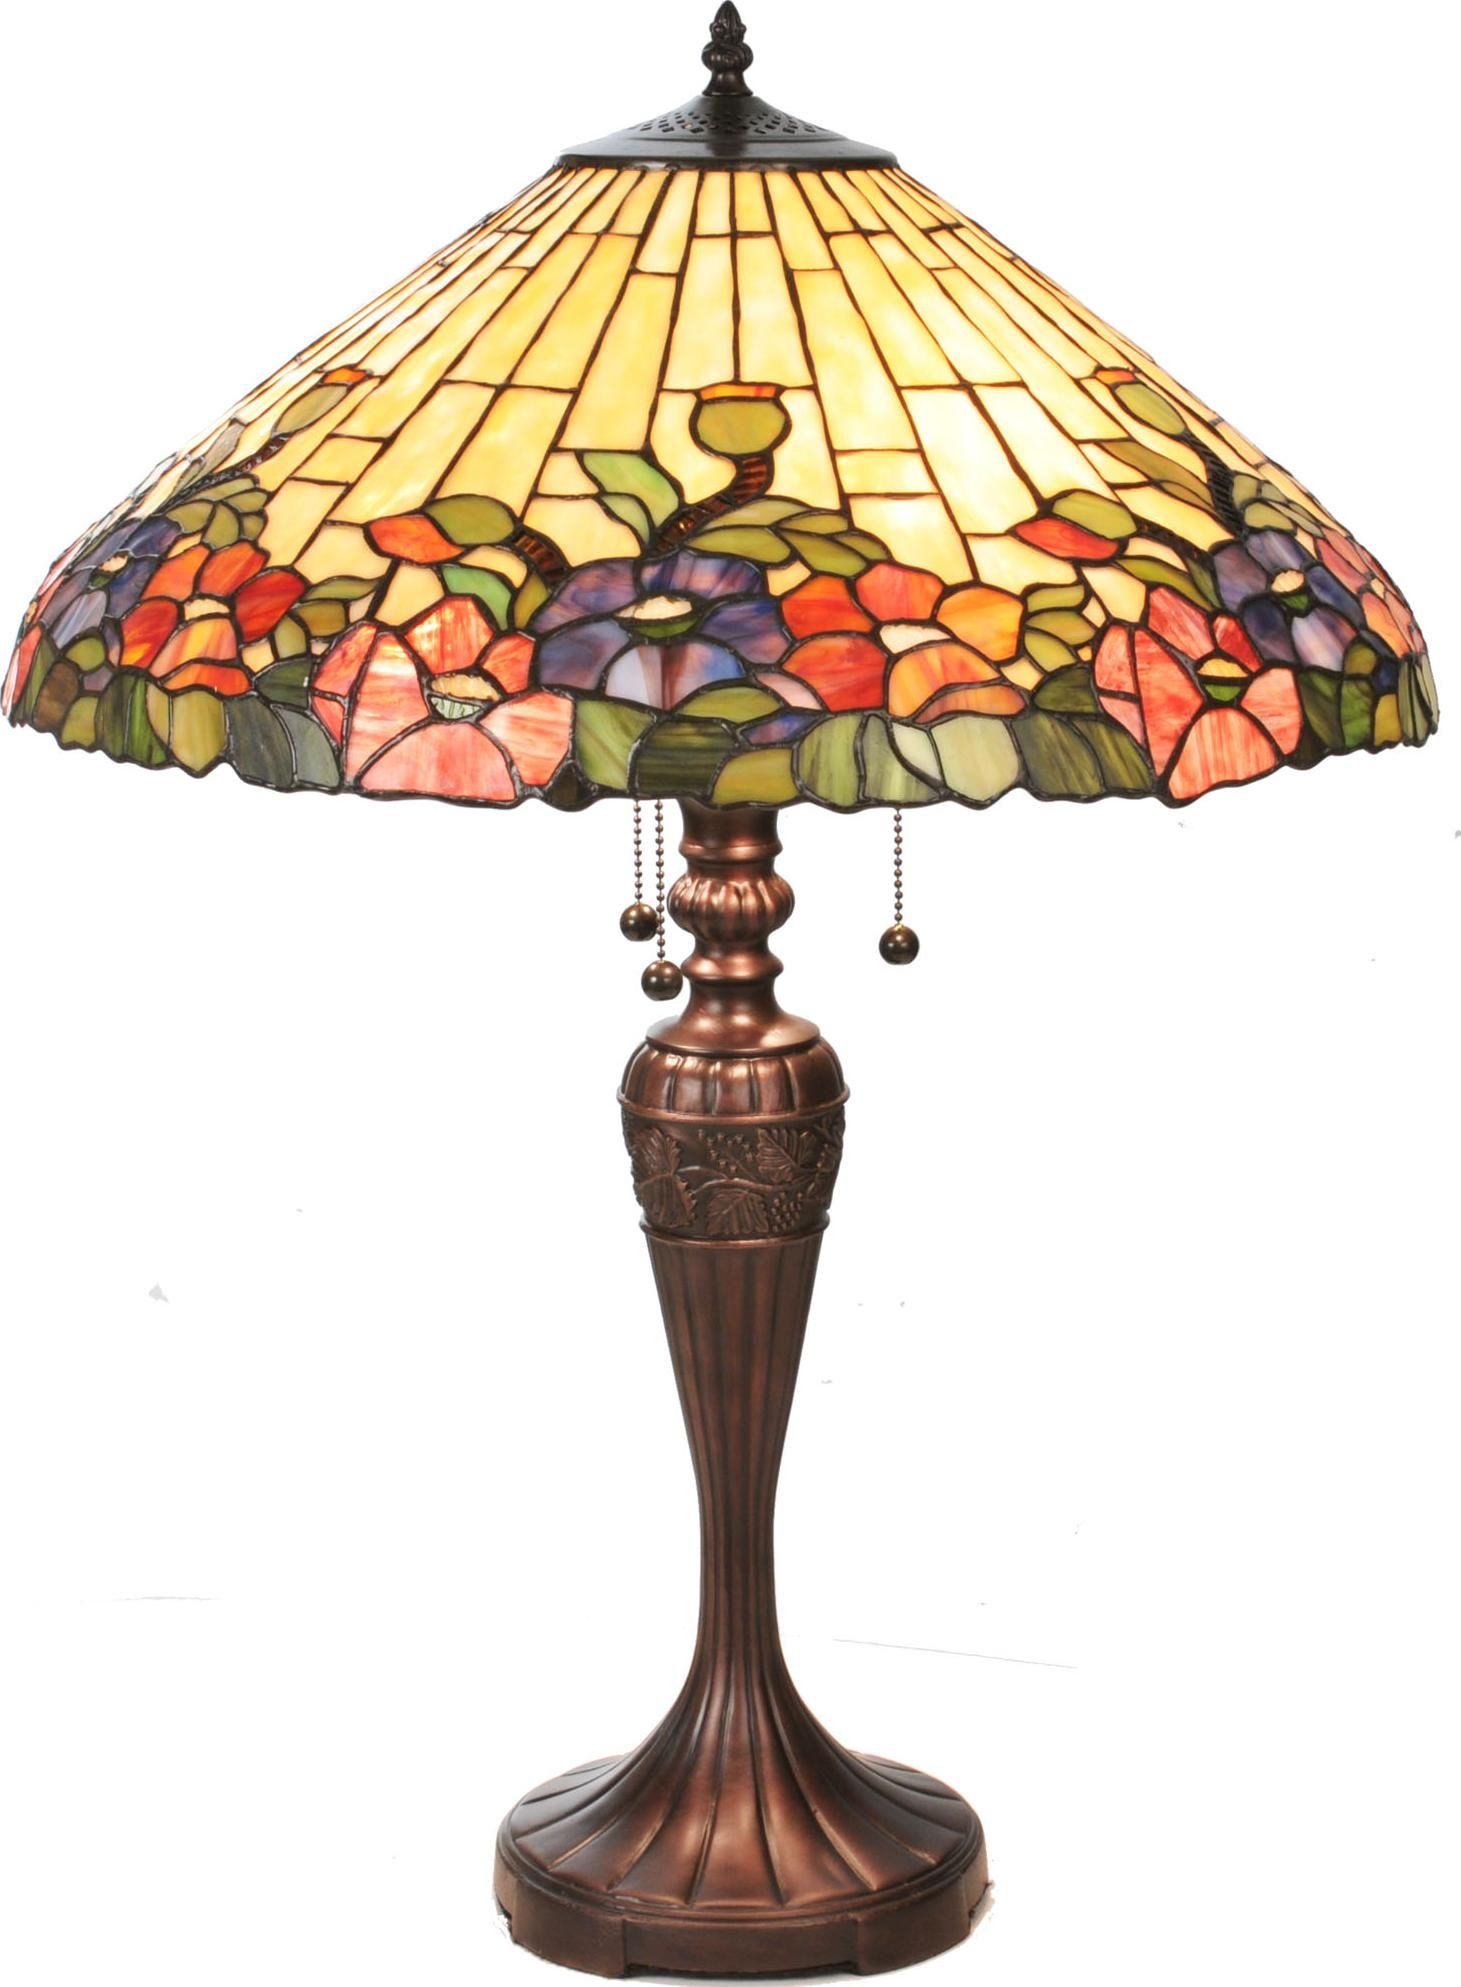 Tiffany Hollyhock Table Lamp Lamps Tiffany Style Lamp Tiffany